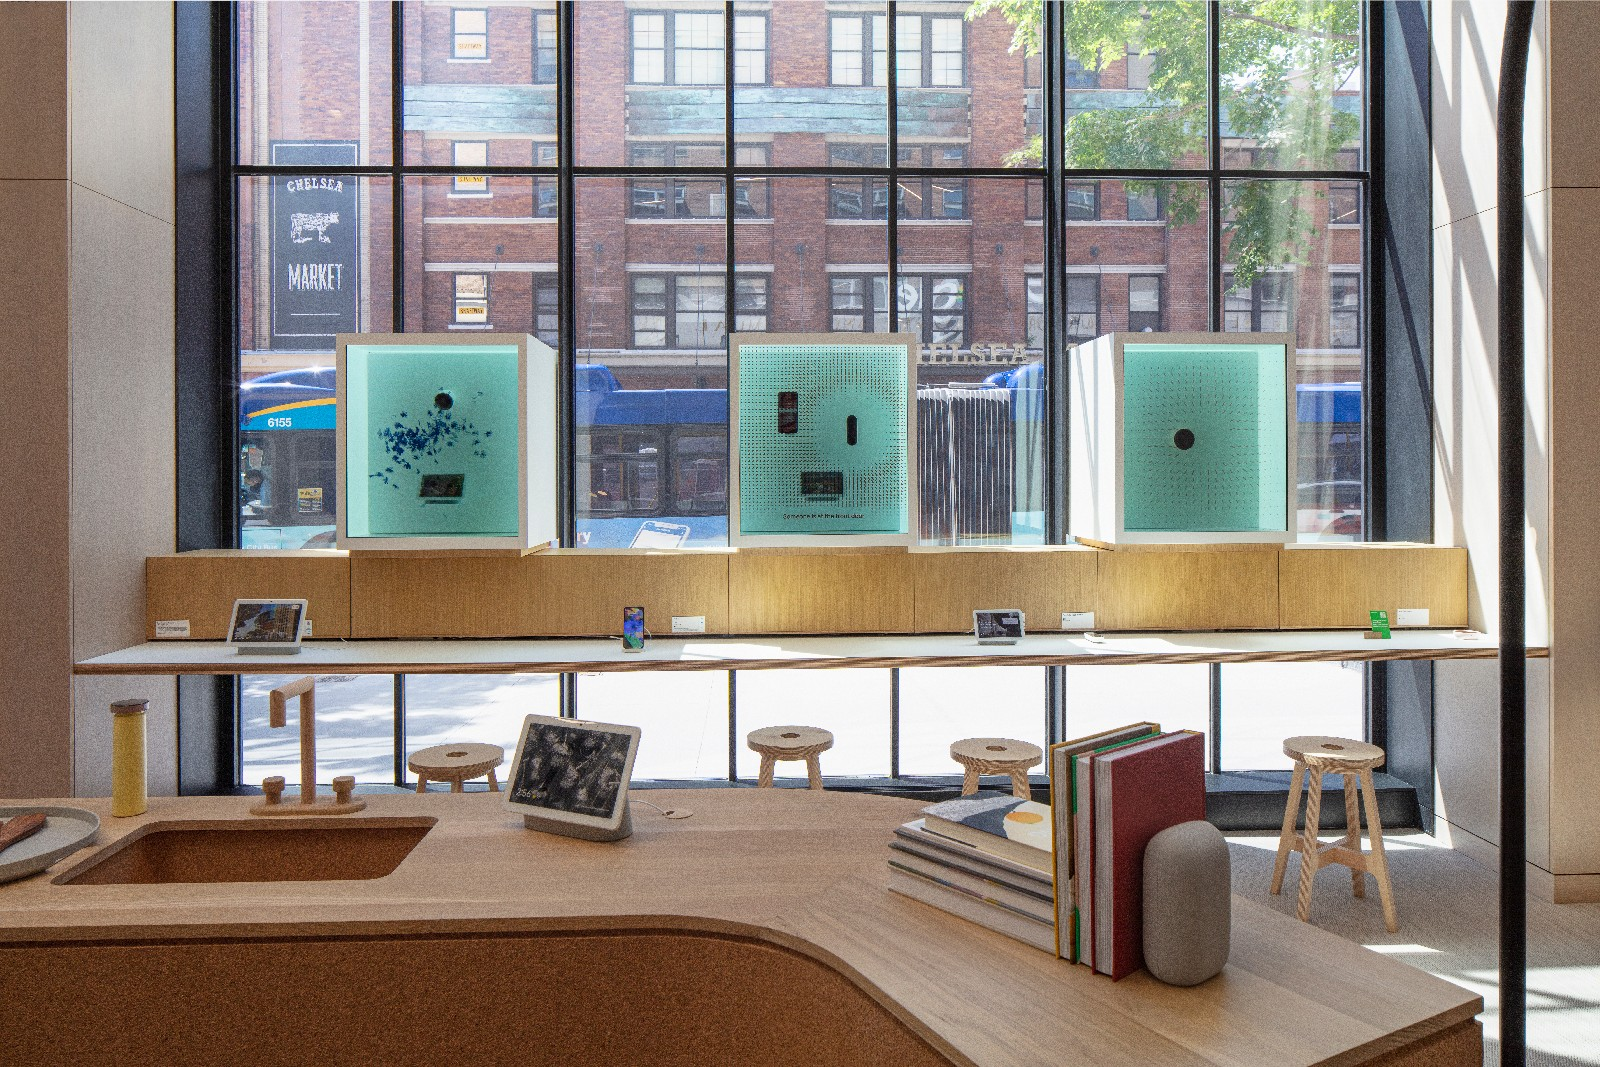 <p>Google Store Chelsea. Interior of the store with large windows and wooden furniture.</p>